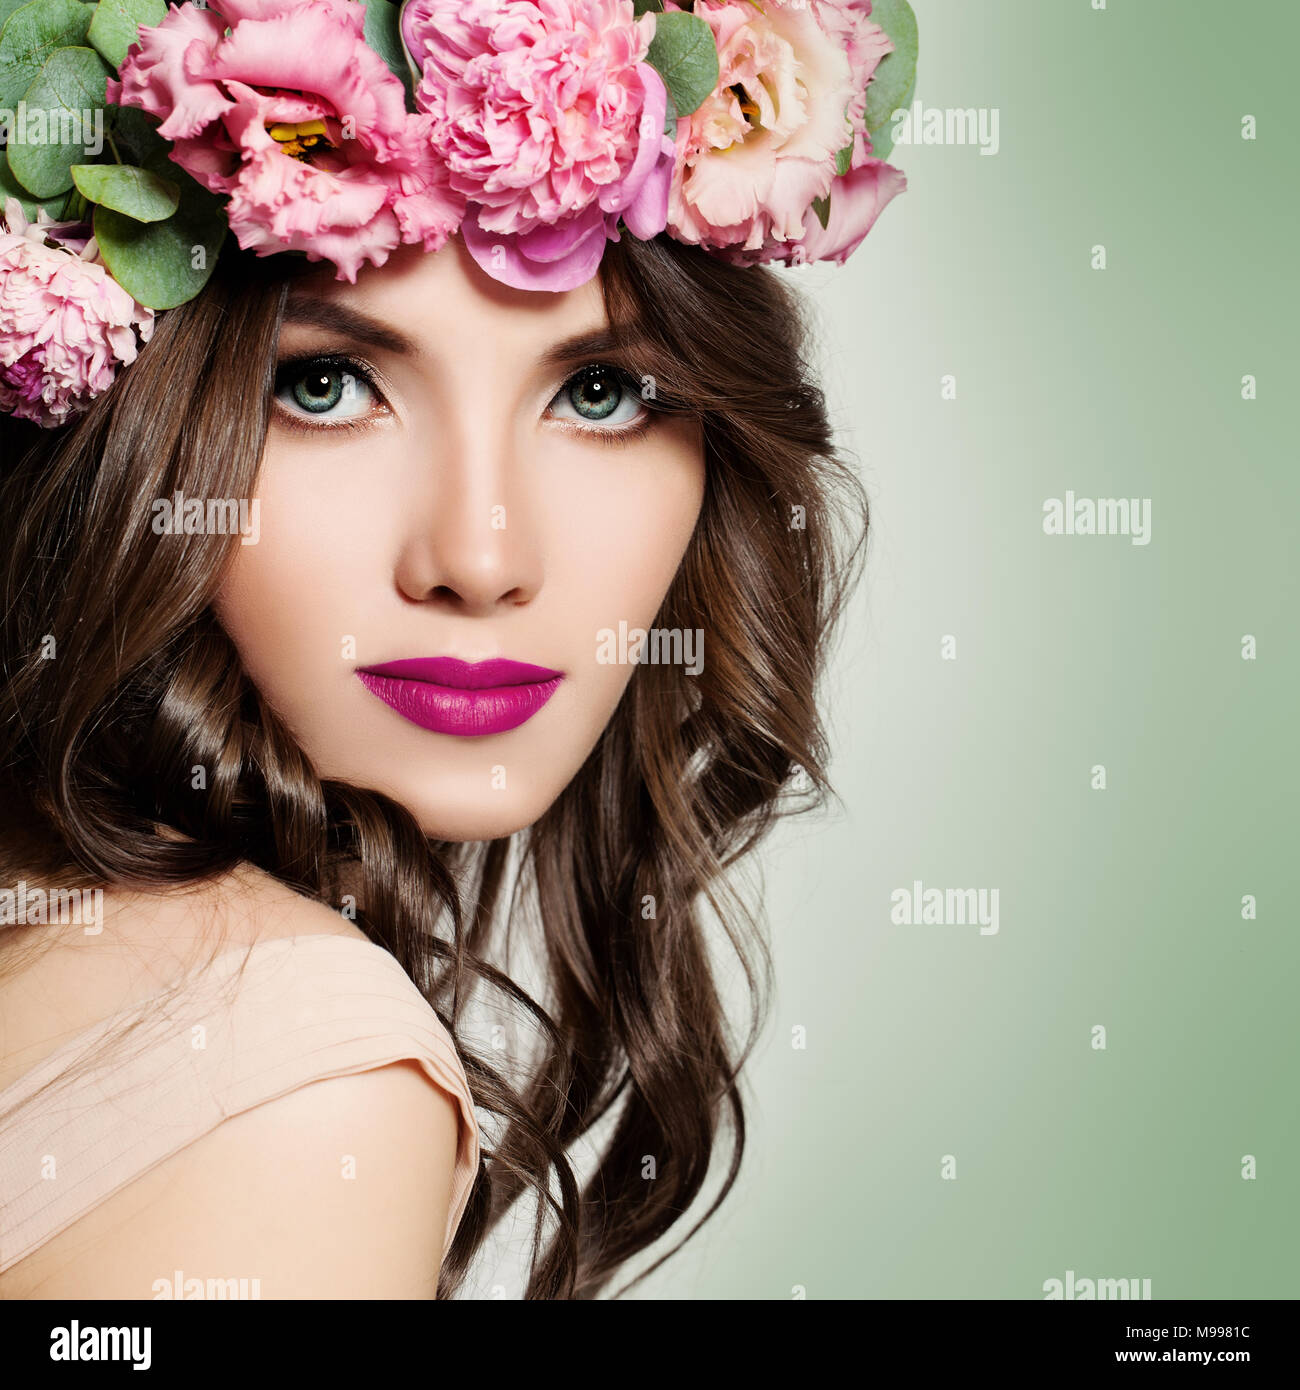 Beautiful girl with flowers wreath long permed curly hair and beautiful girl with flowers wreath long permed curly hair and fashion makeup blossom portrait of pretty young woman with pink flowers izmirmasajfo